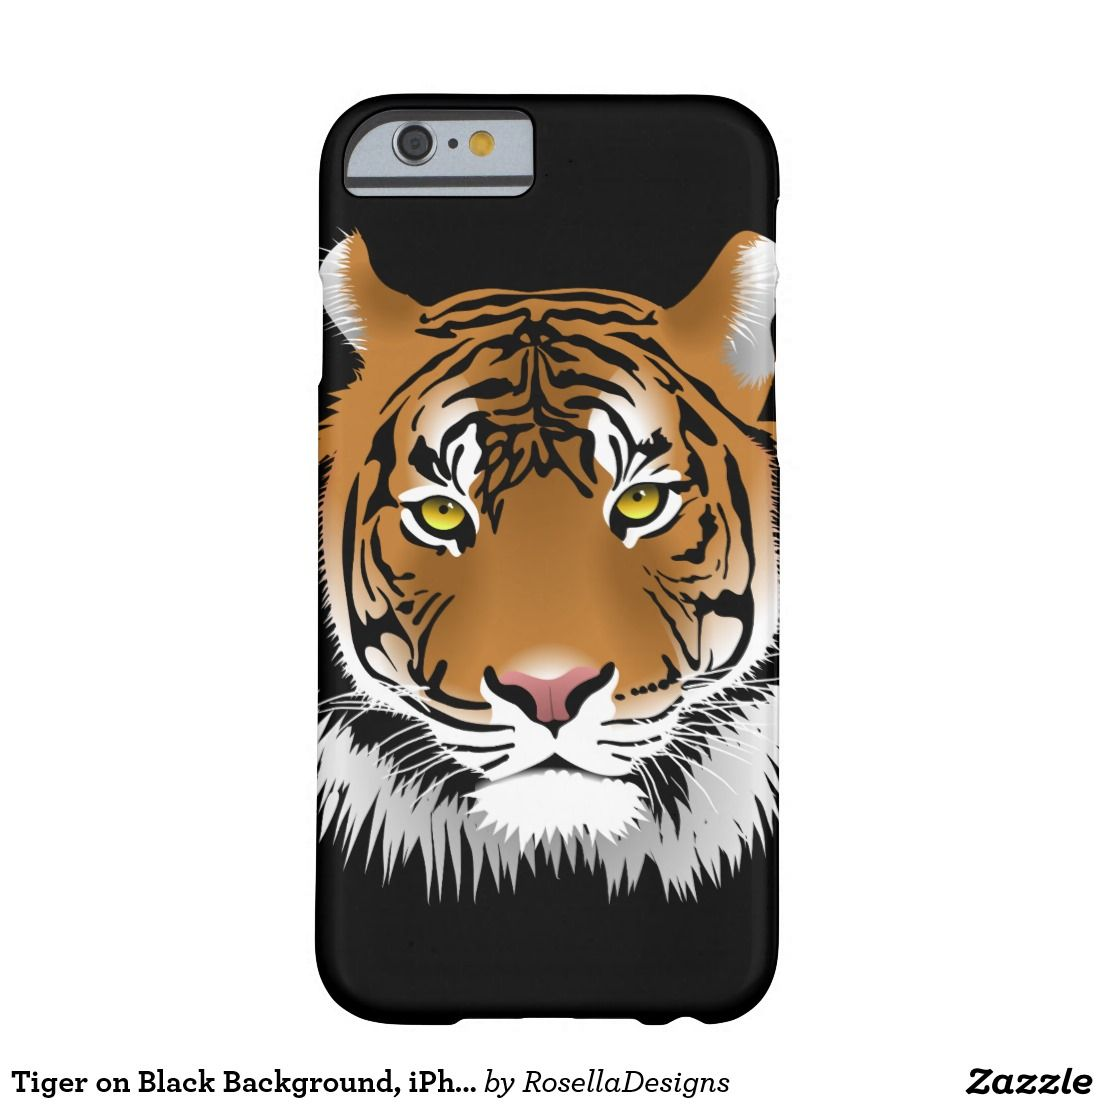 Tiger on Black Background, iPhone 6/6s Case